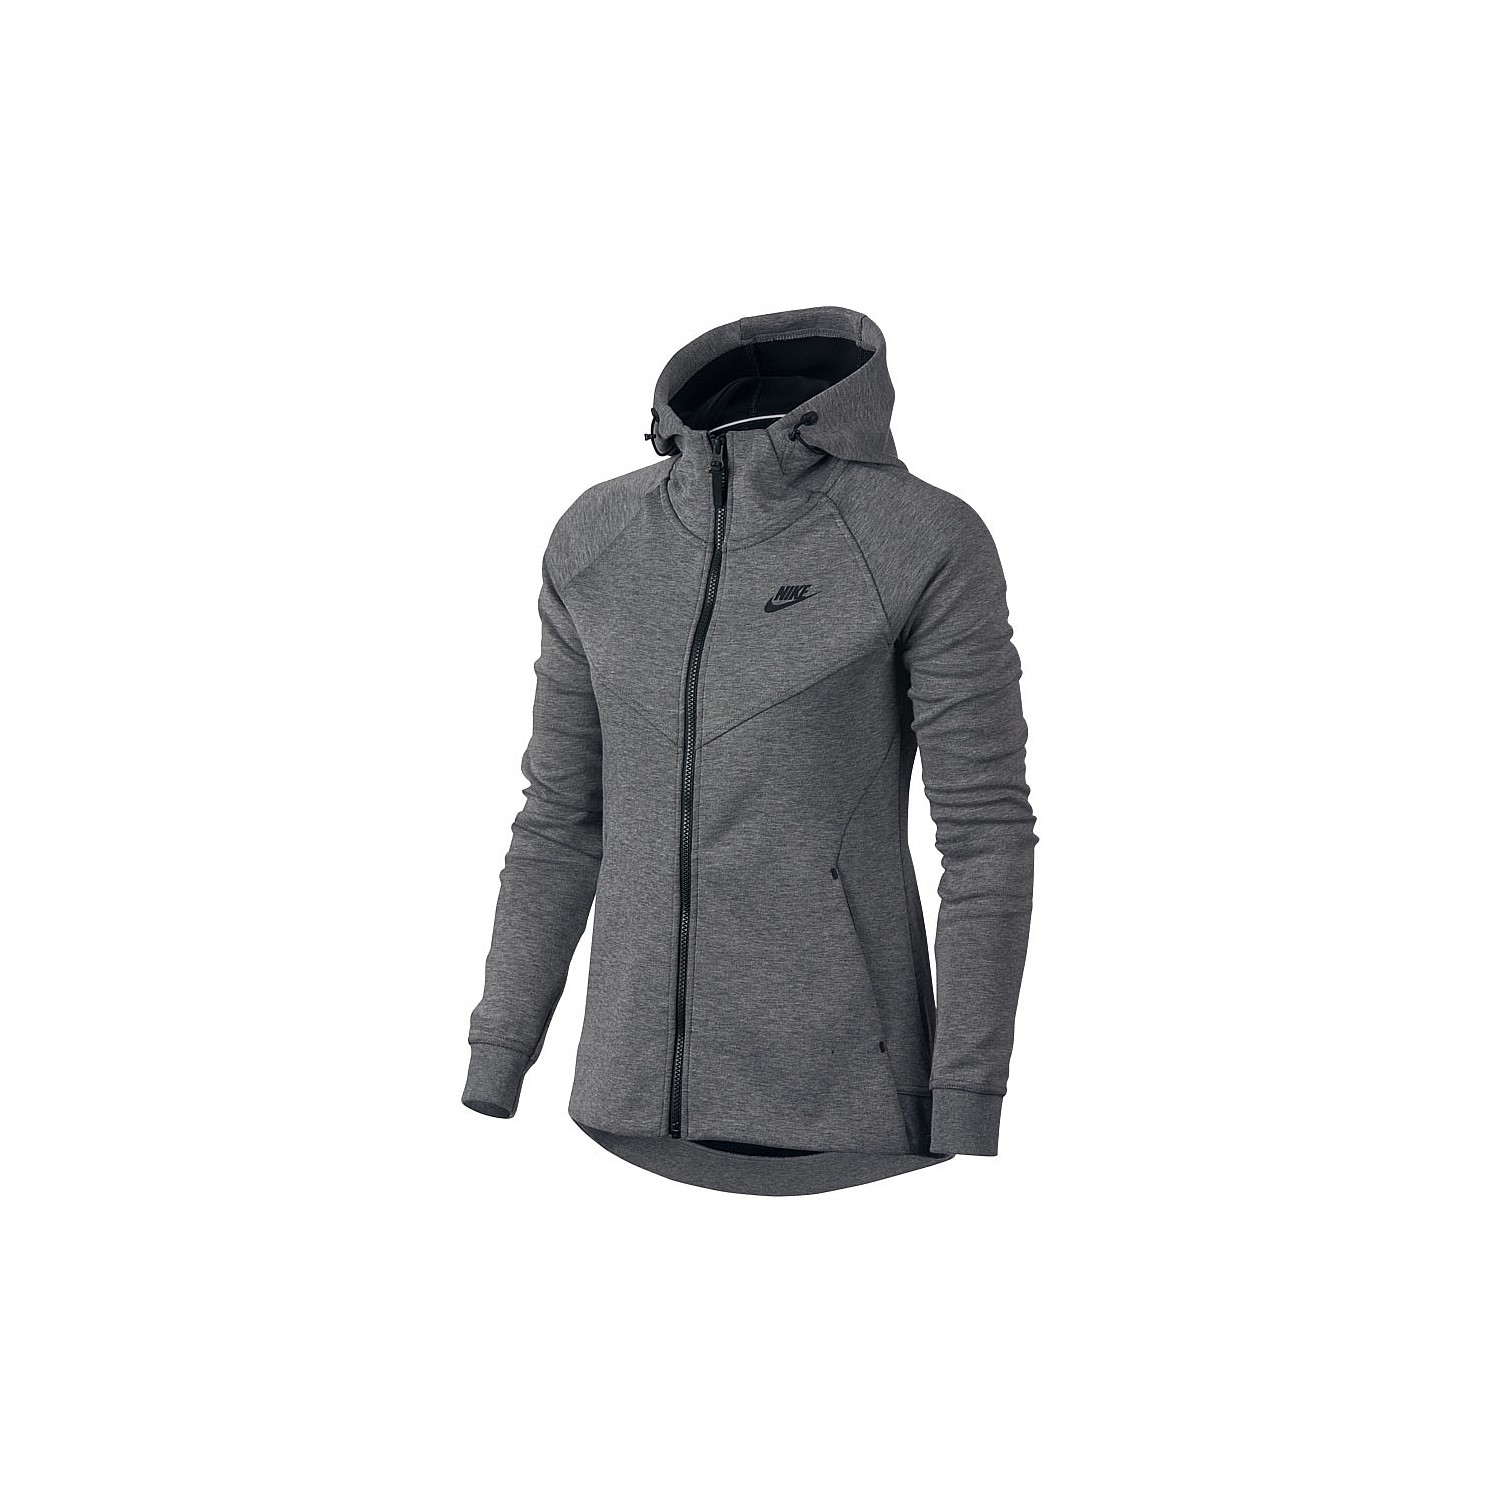 Women S Tracksuits Shop Womens Tracksuits Online Stirling Sports Tech Fleece Hoodie